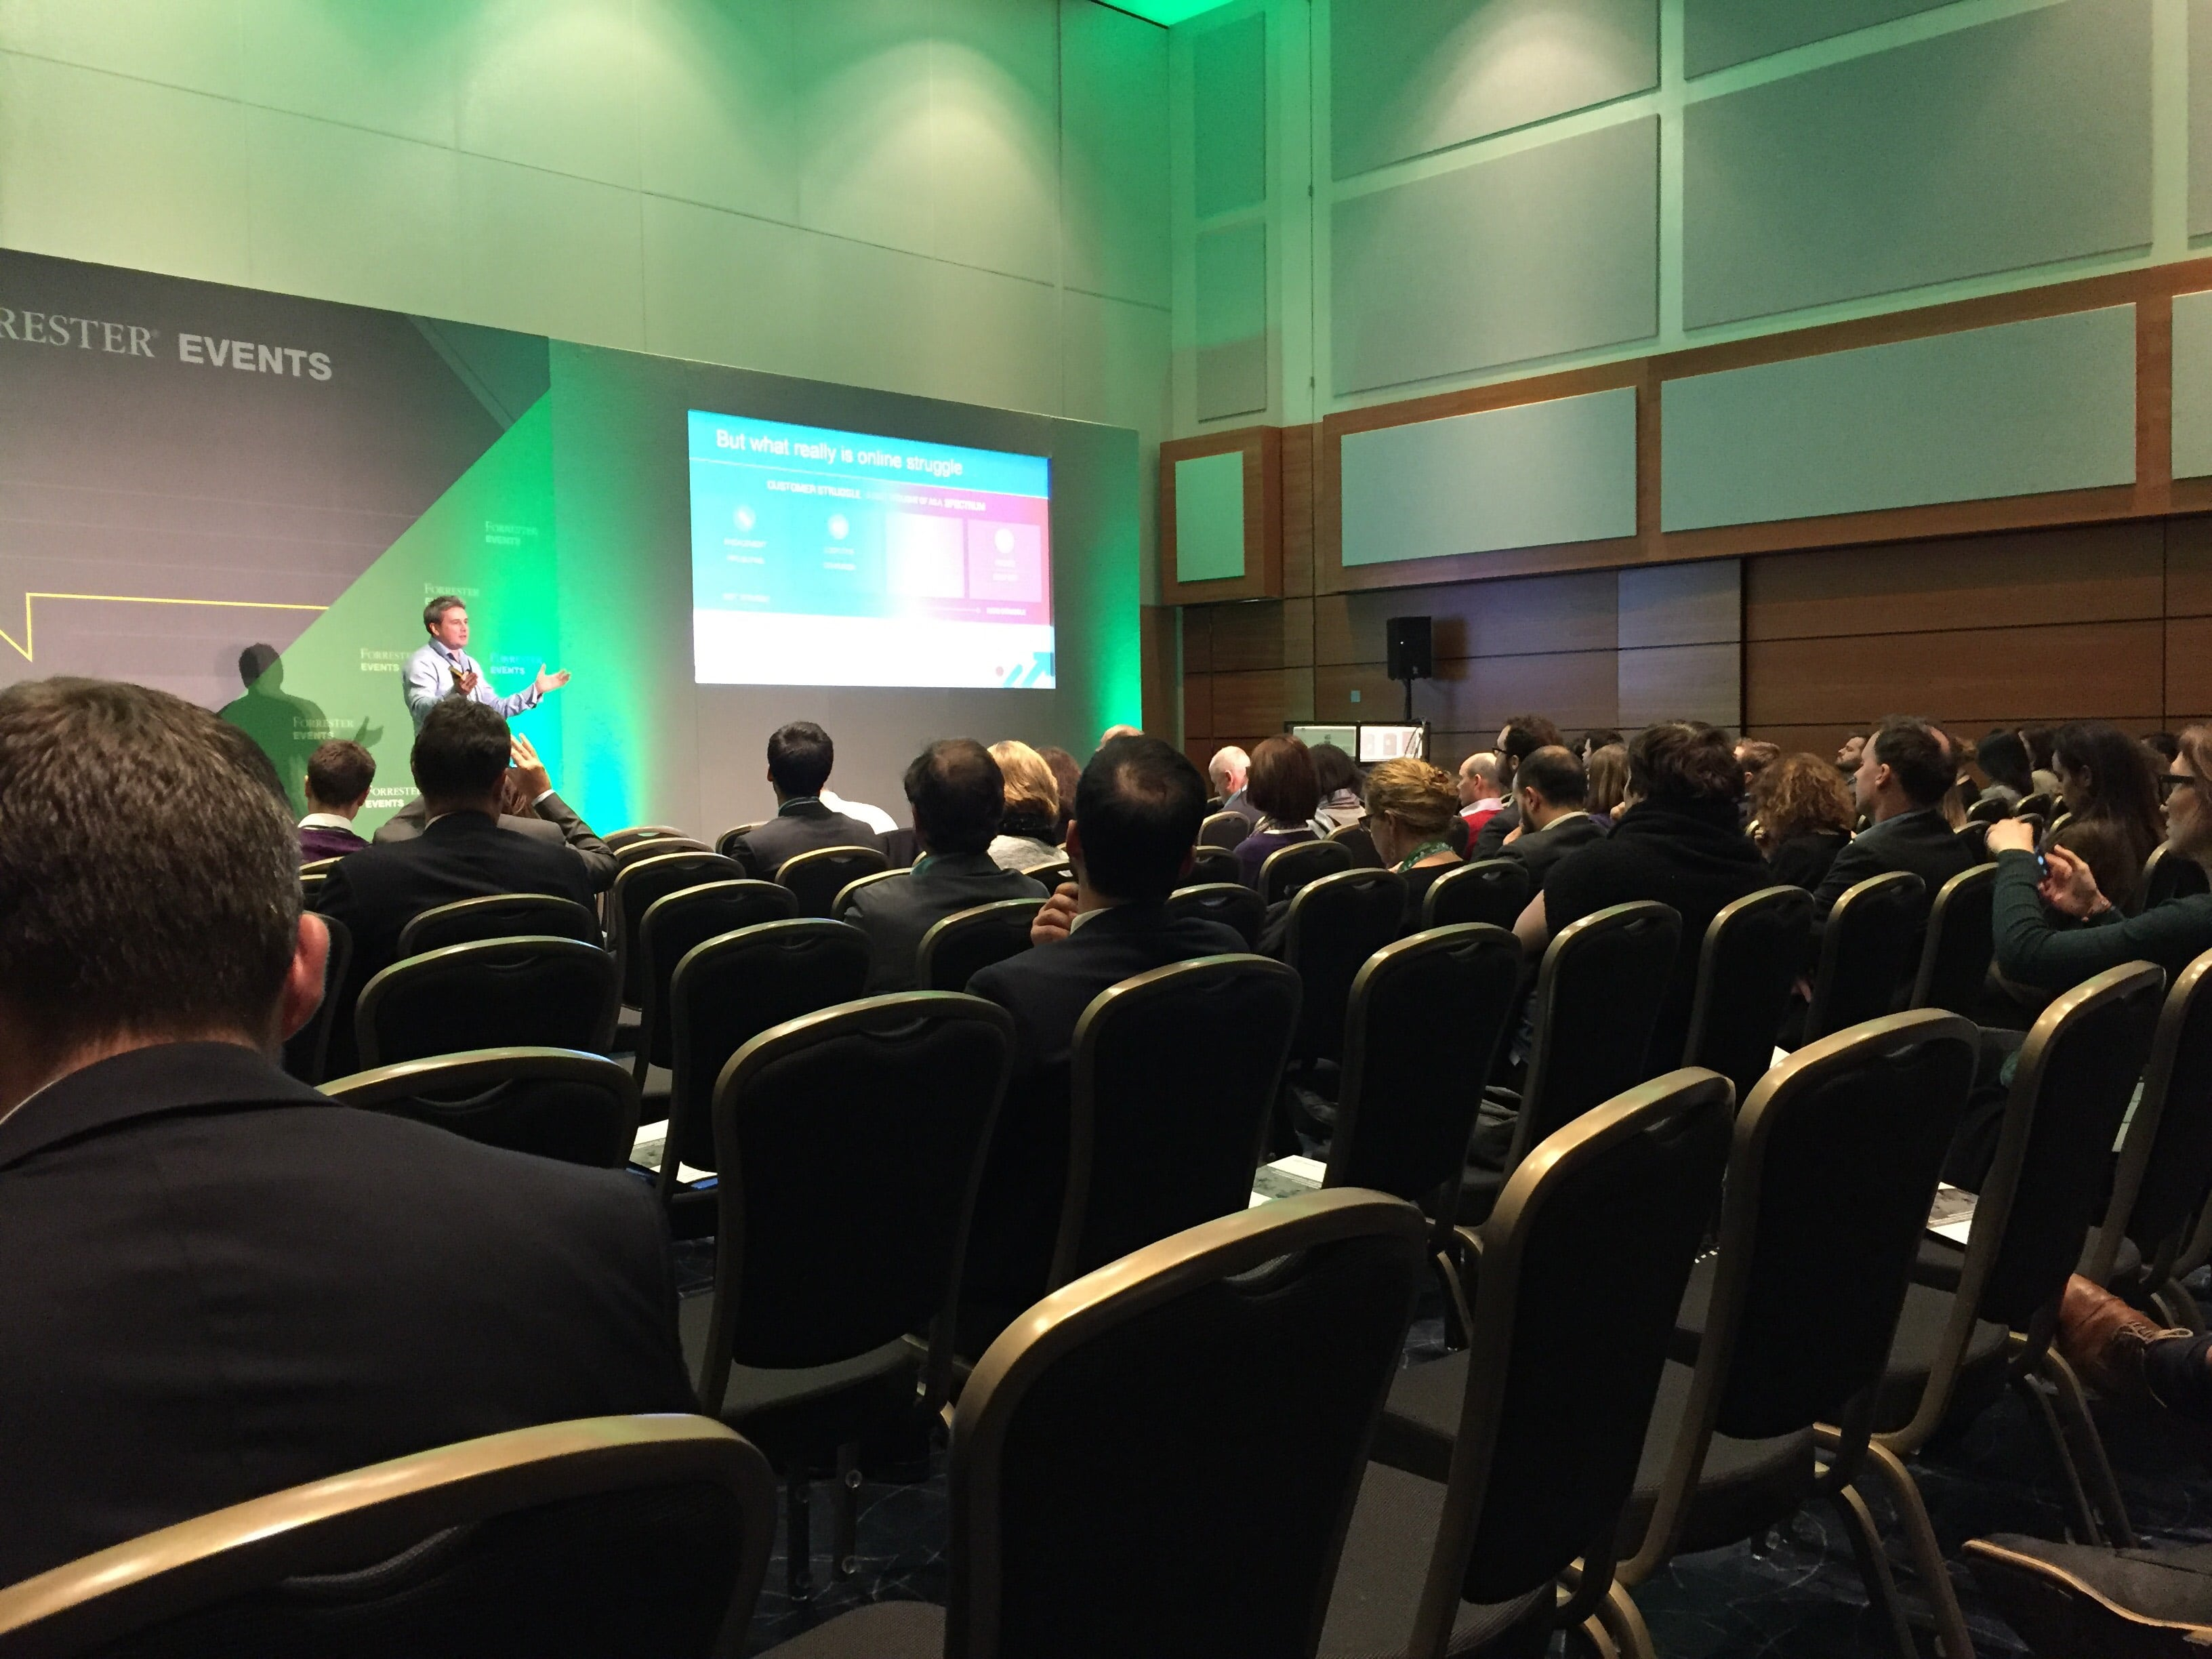 Customer Experience Takes Center Stage At Forrester's CX Europe